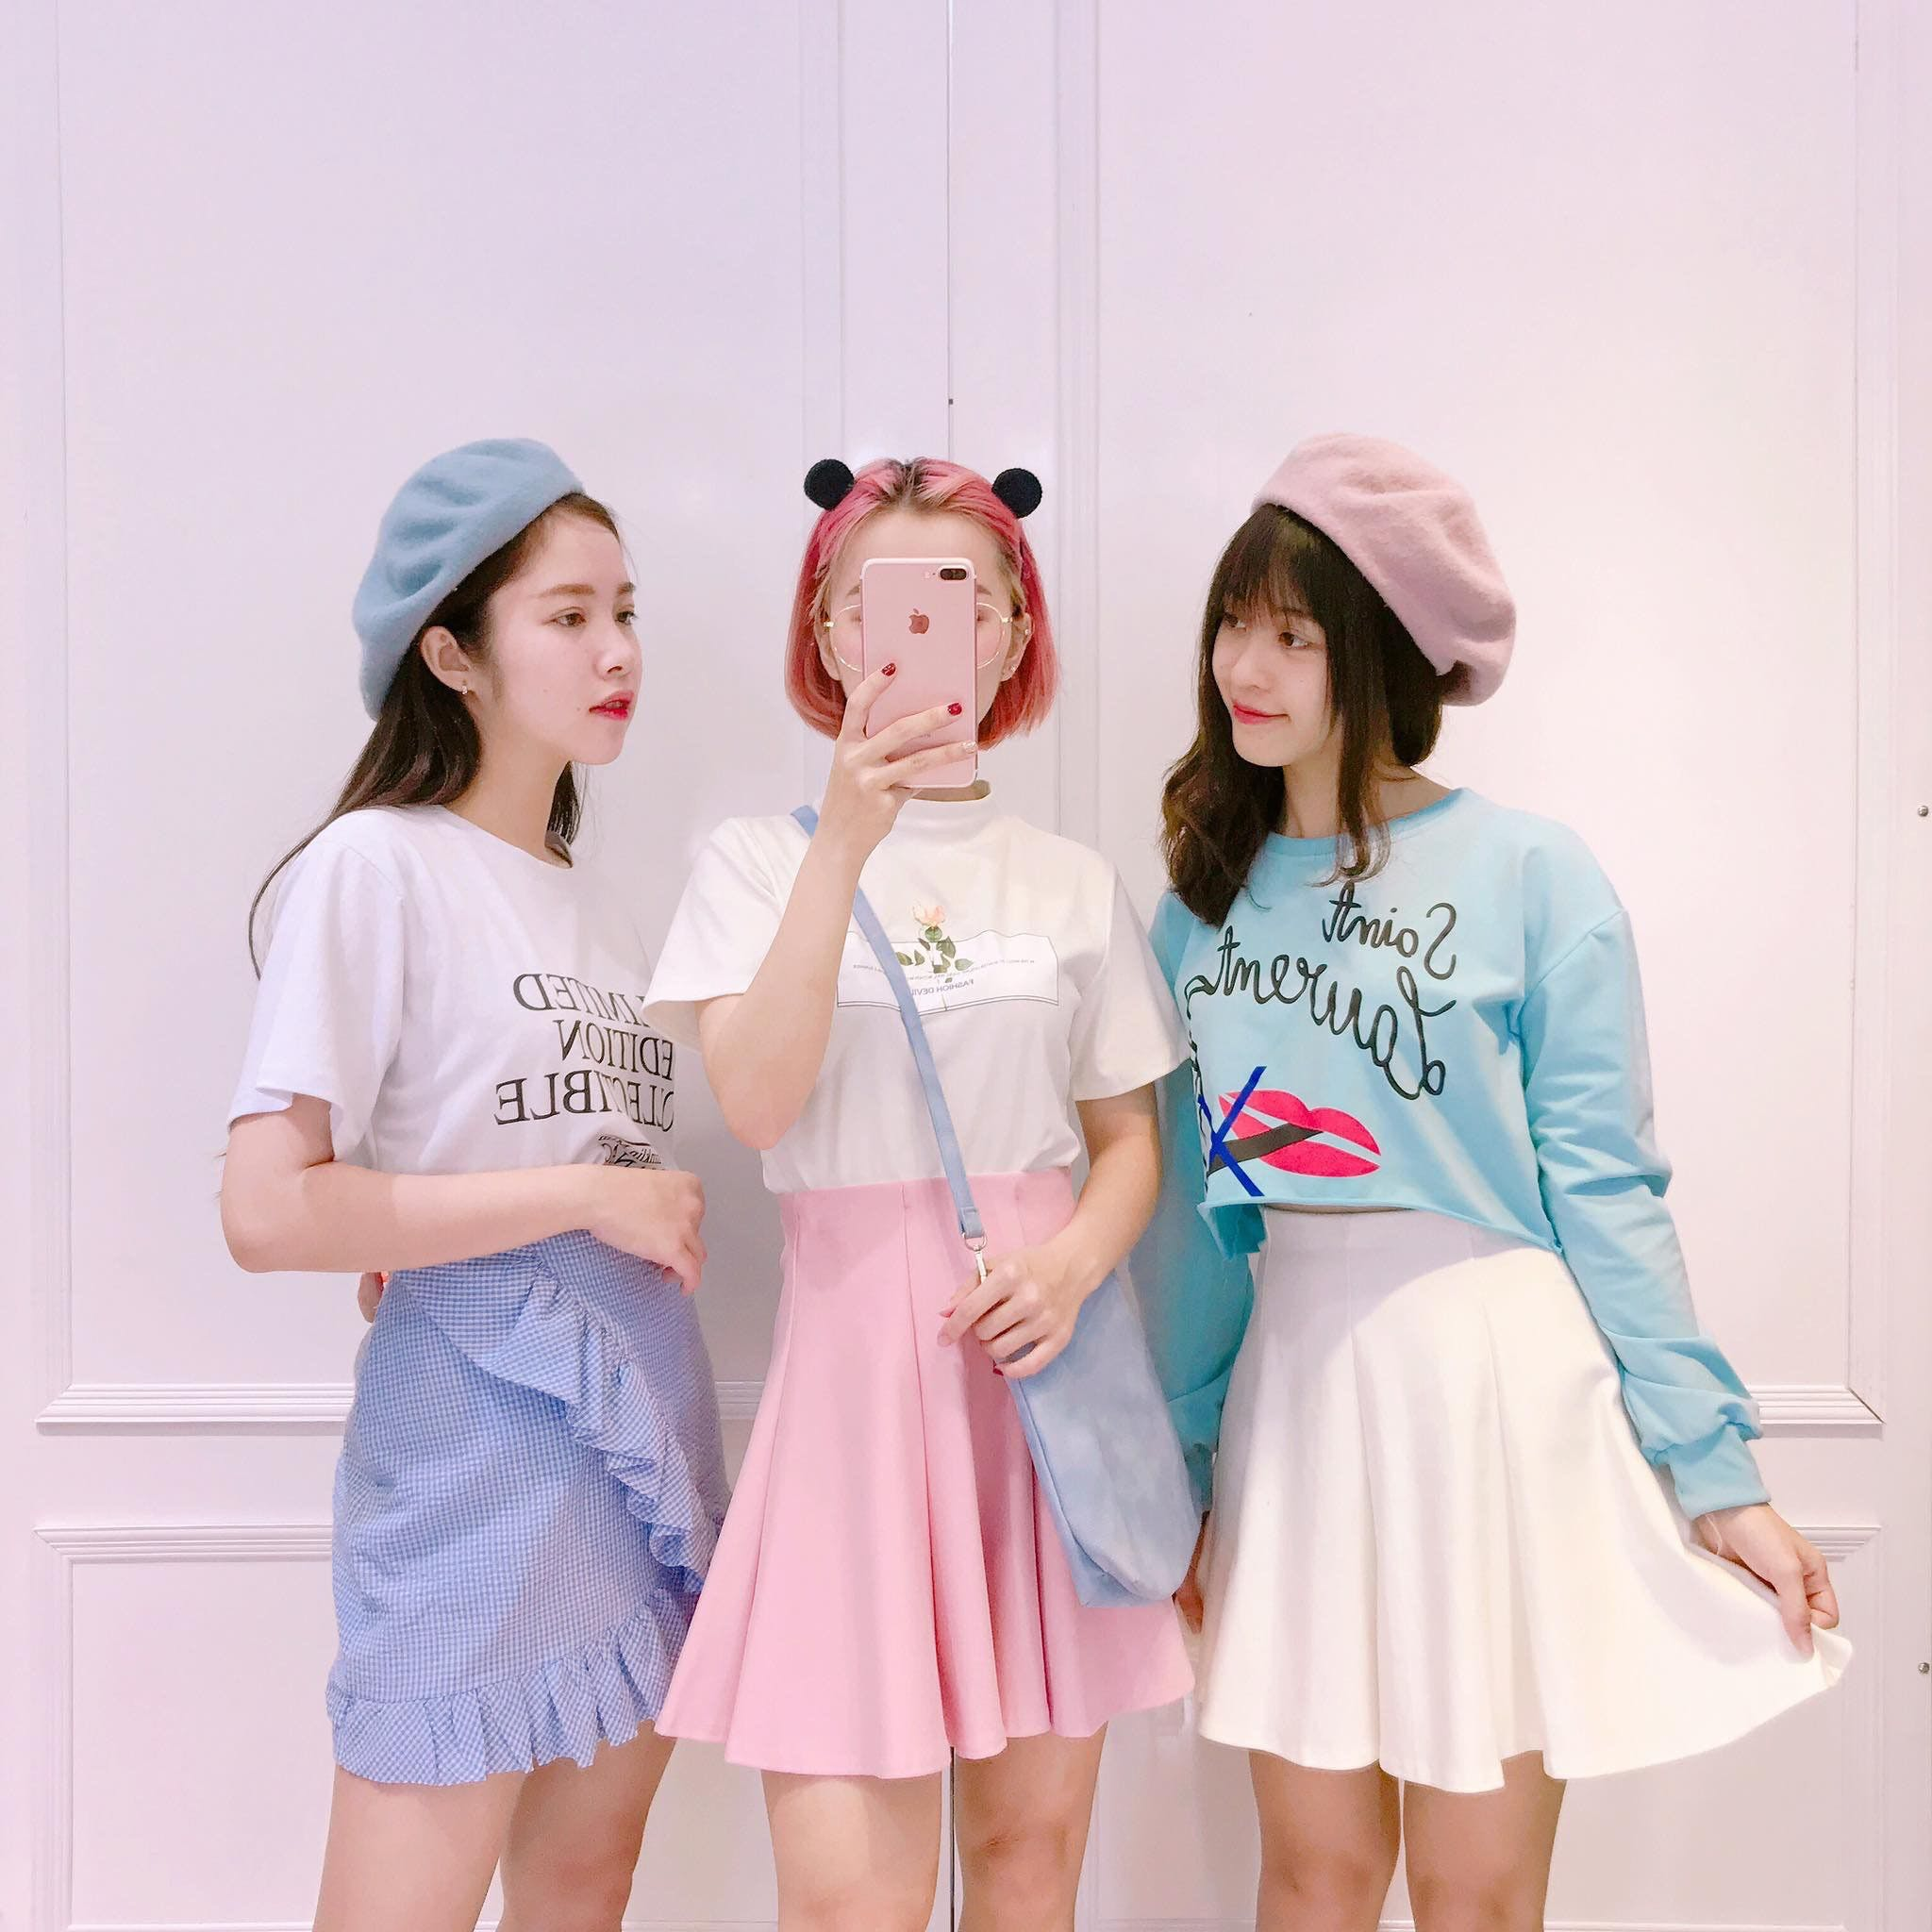 5 Korean Fashion Trends You Need for 5!  nomakenolife: The